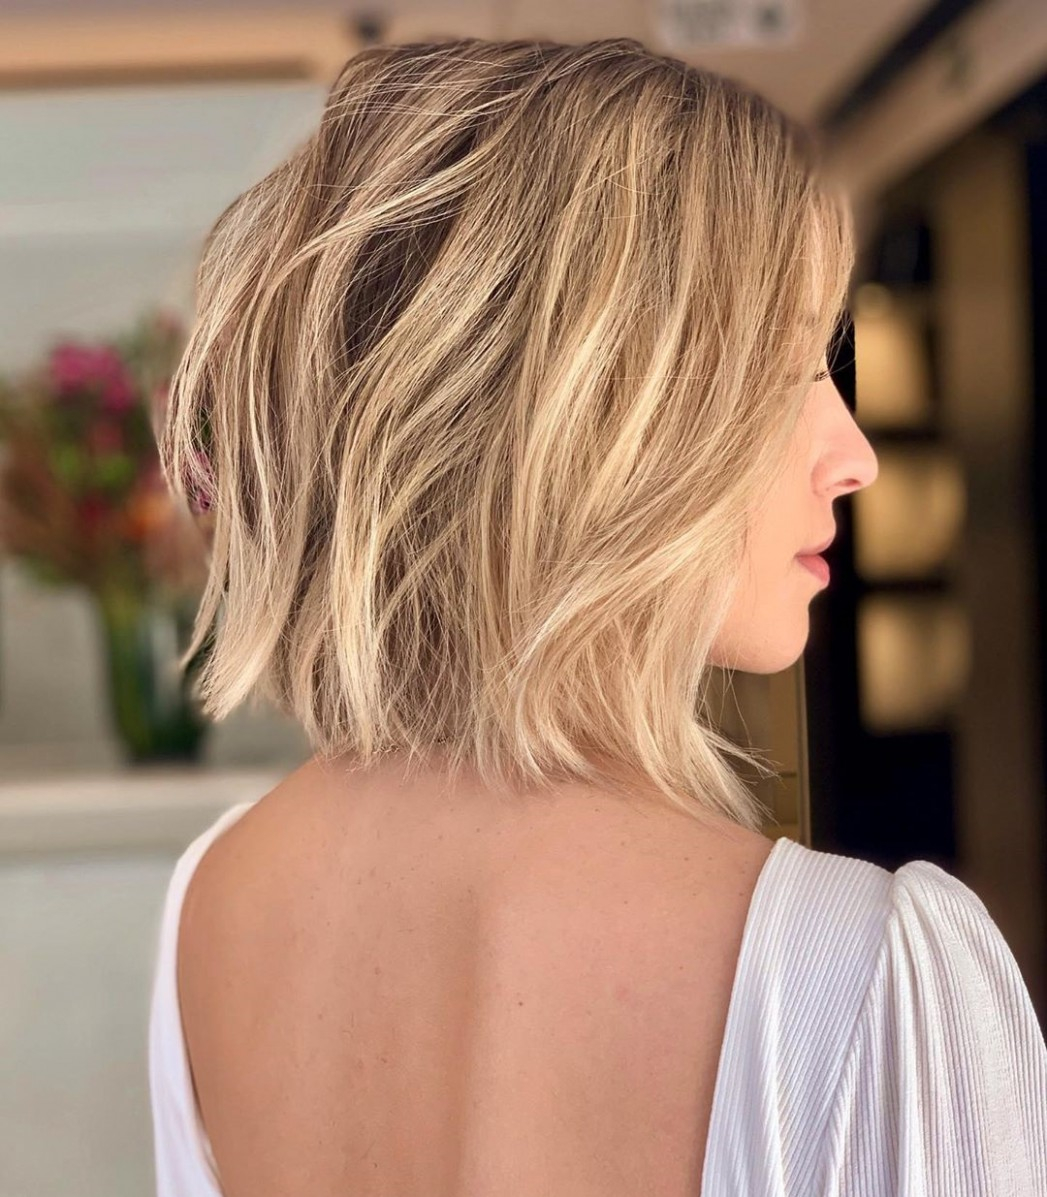 11 Blunt Cuts And Blunt Bobs That Are Dominating In 11 Hair Blunt Cut Medium Length